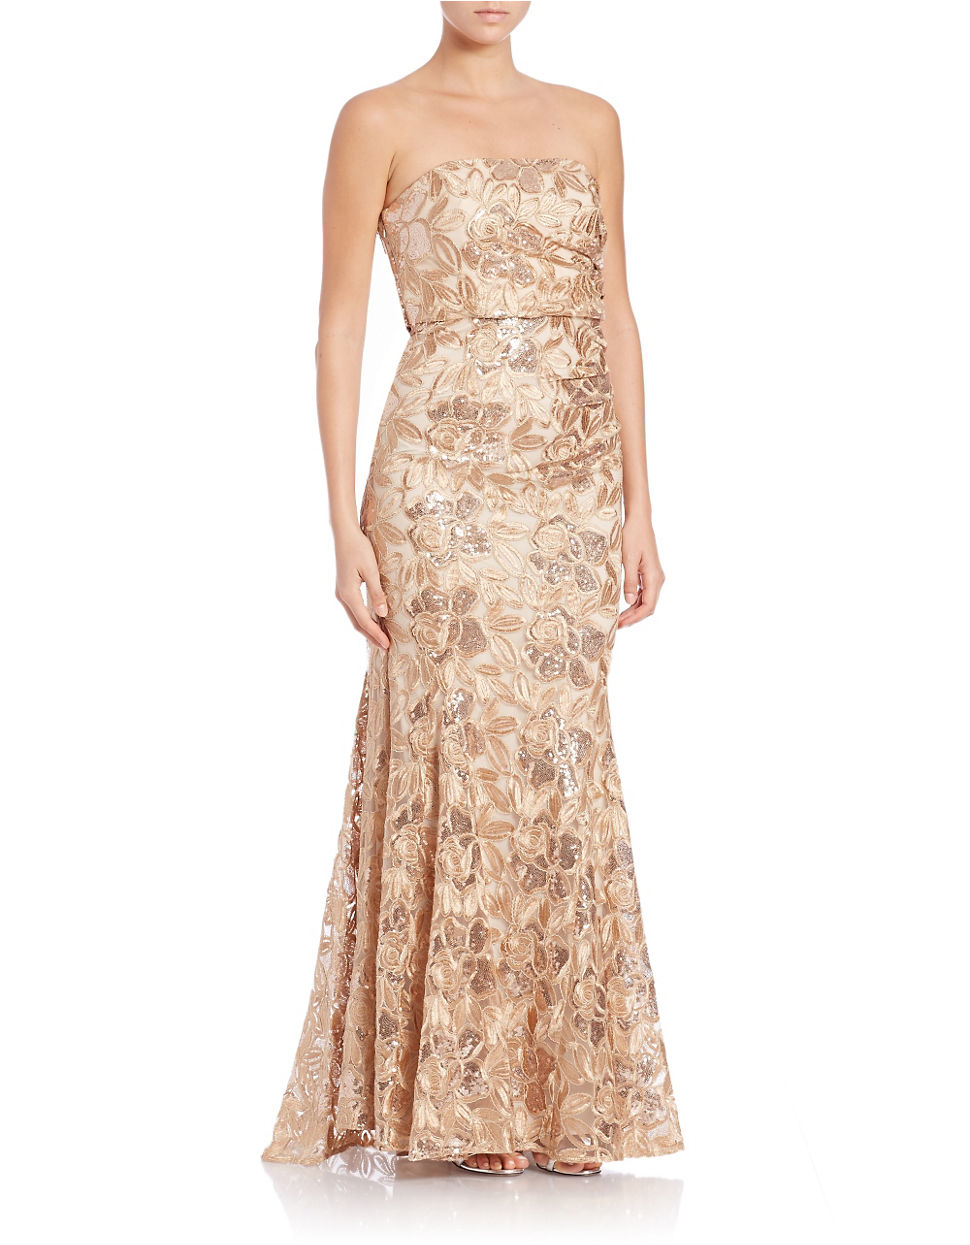 Lyst - Belle By Badgley Mischka Sequined And Floral Lace Gown in ...